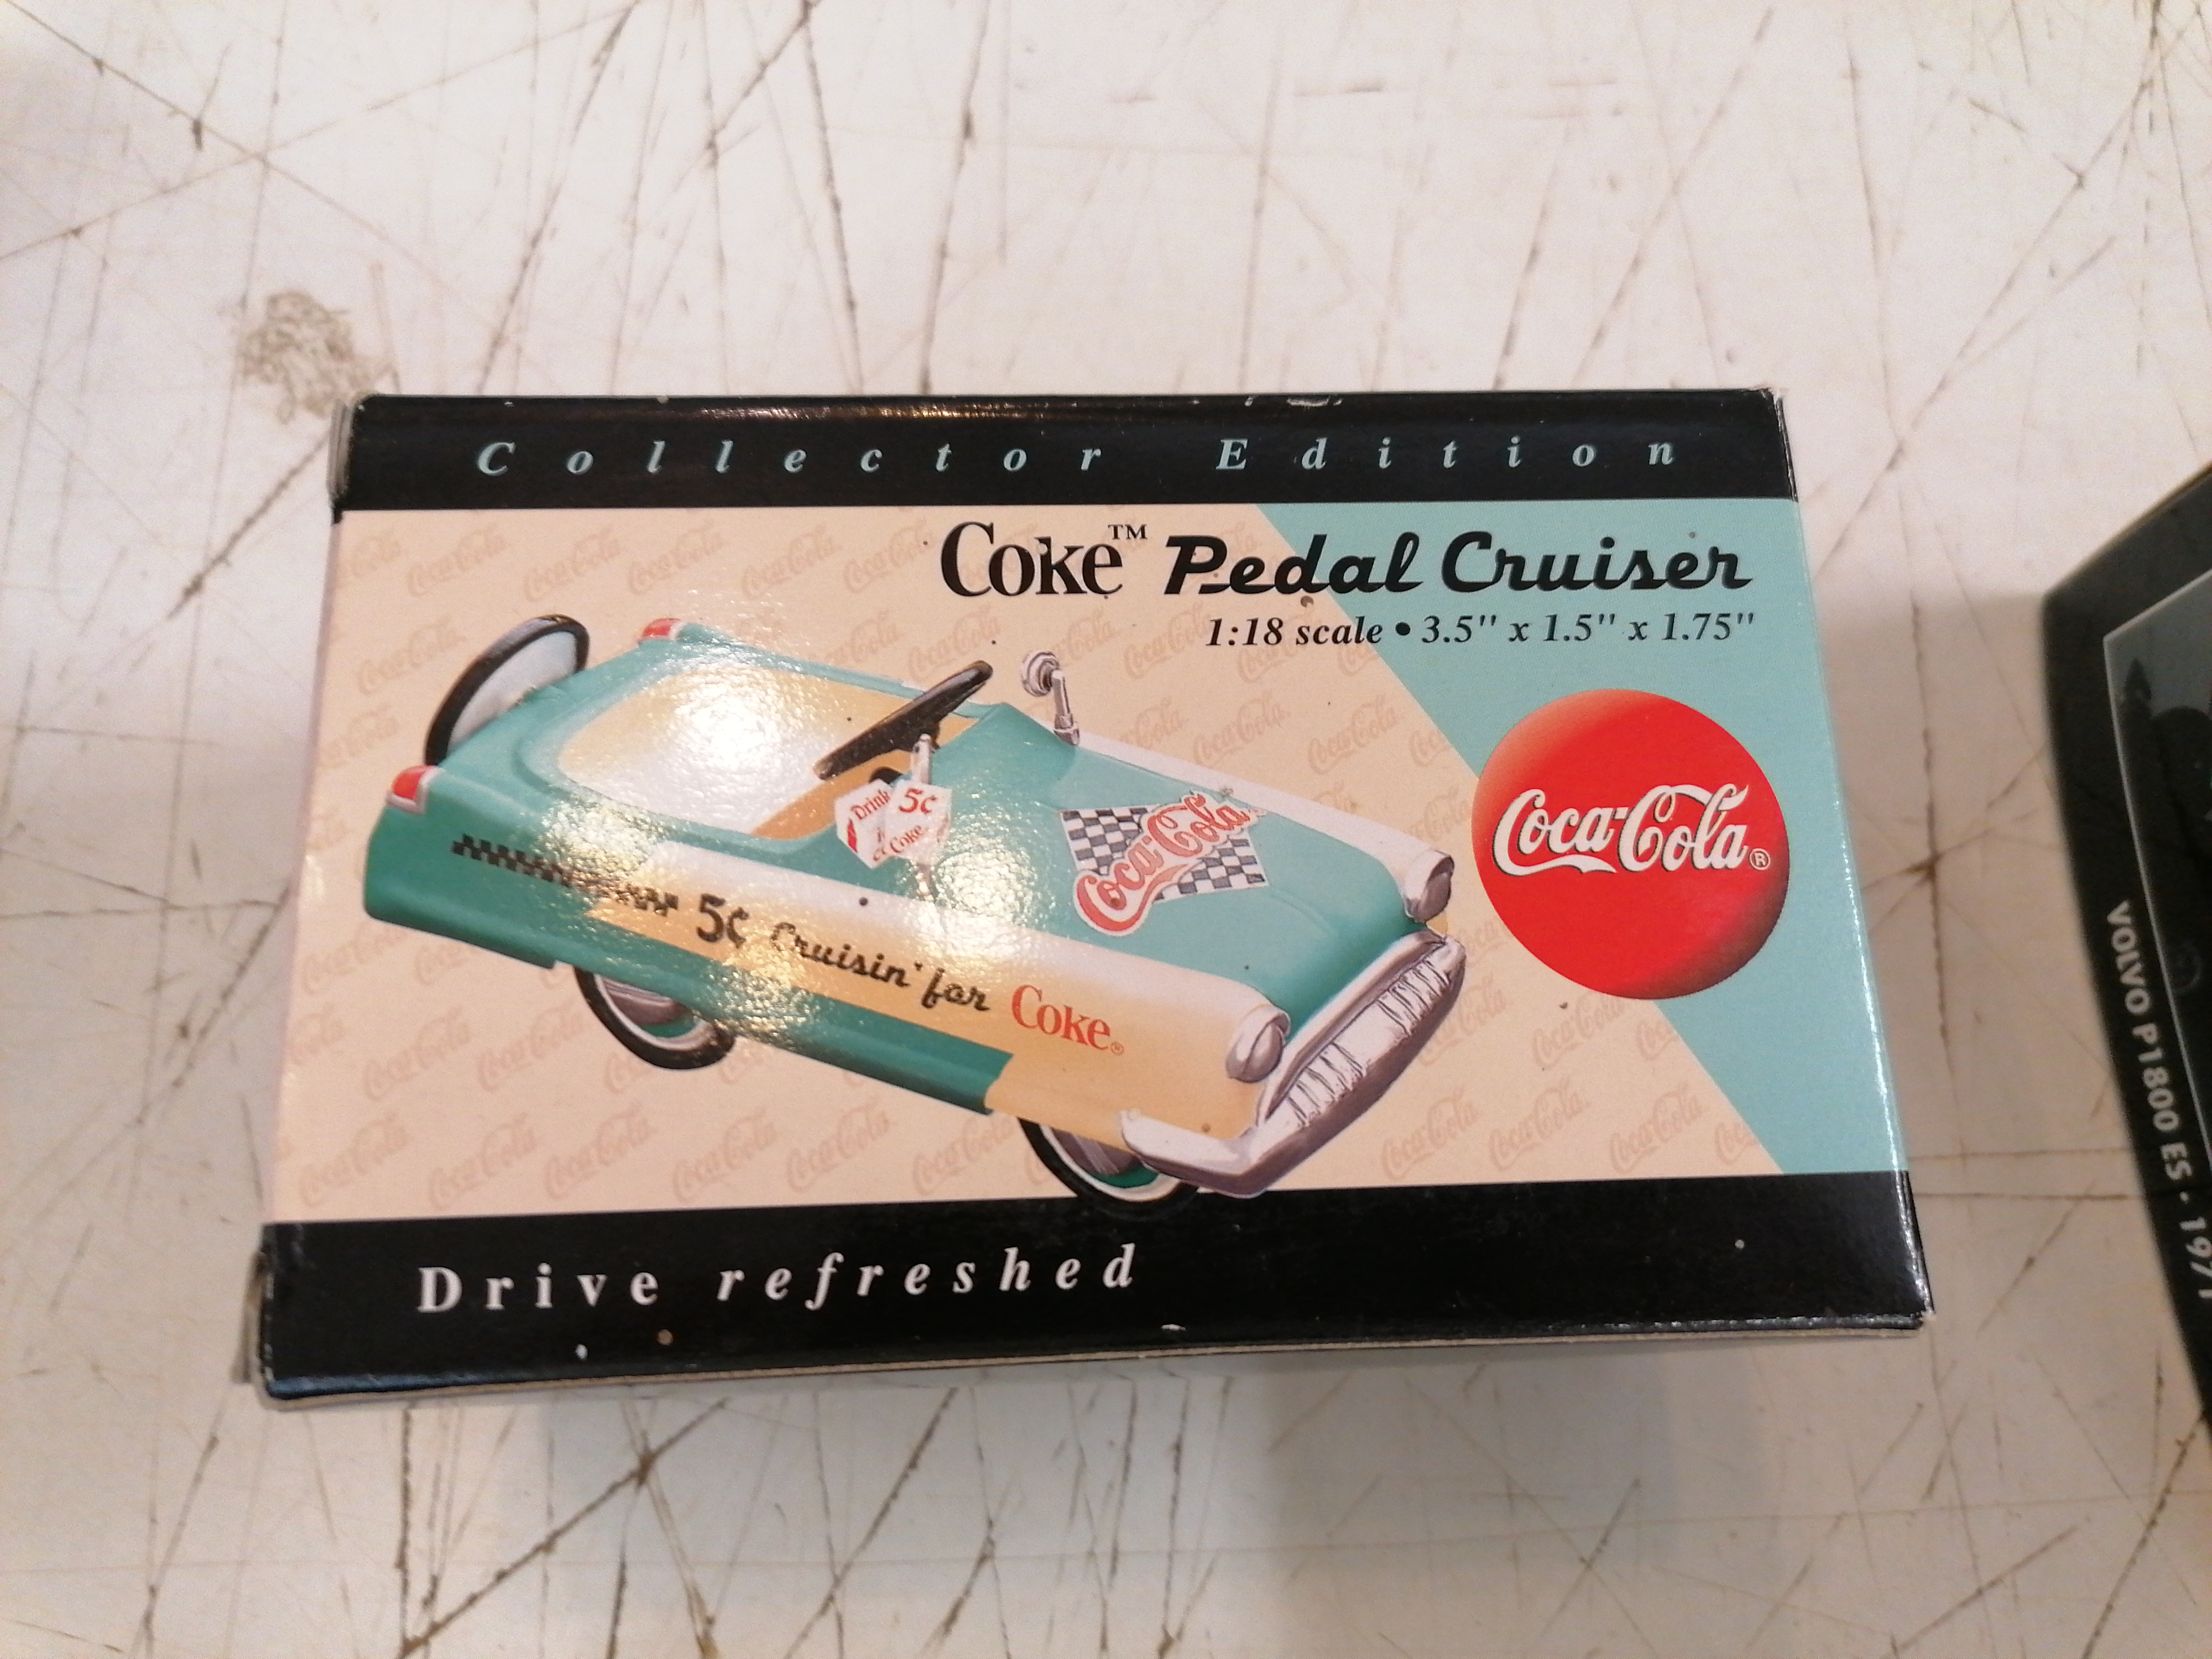 "<p>Miniature Coke Pedal Cruiser<br />Coca-Cola<br />15,00 € T.T.C<br /><a href=""/Article/110913?type=depose"" style=""color:white;"" target=""_blank"">Lien vers l&#39;article</a></p>"